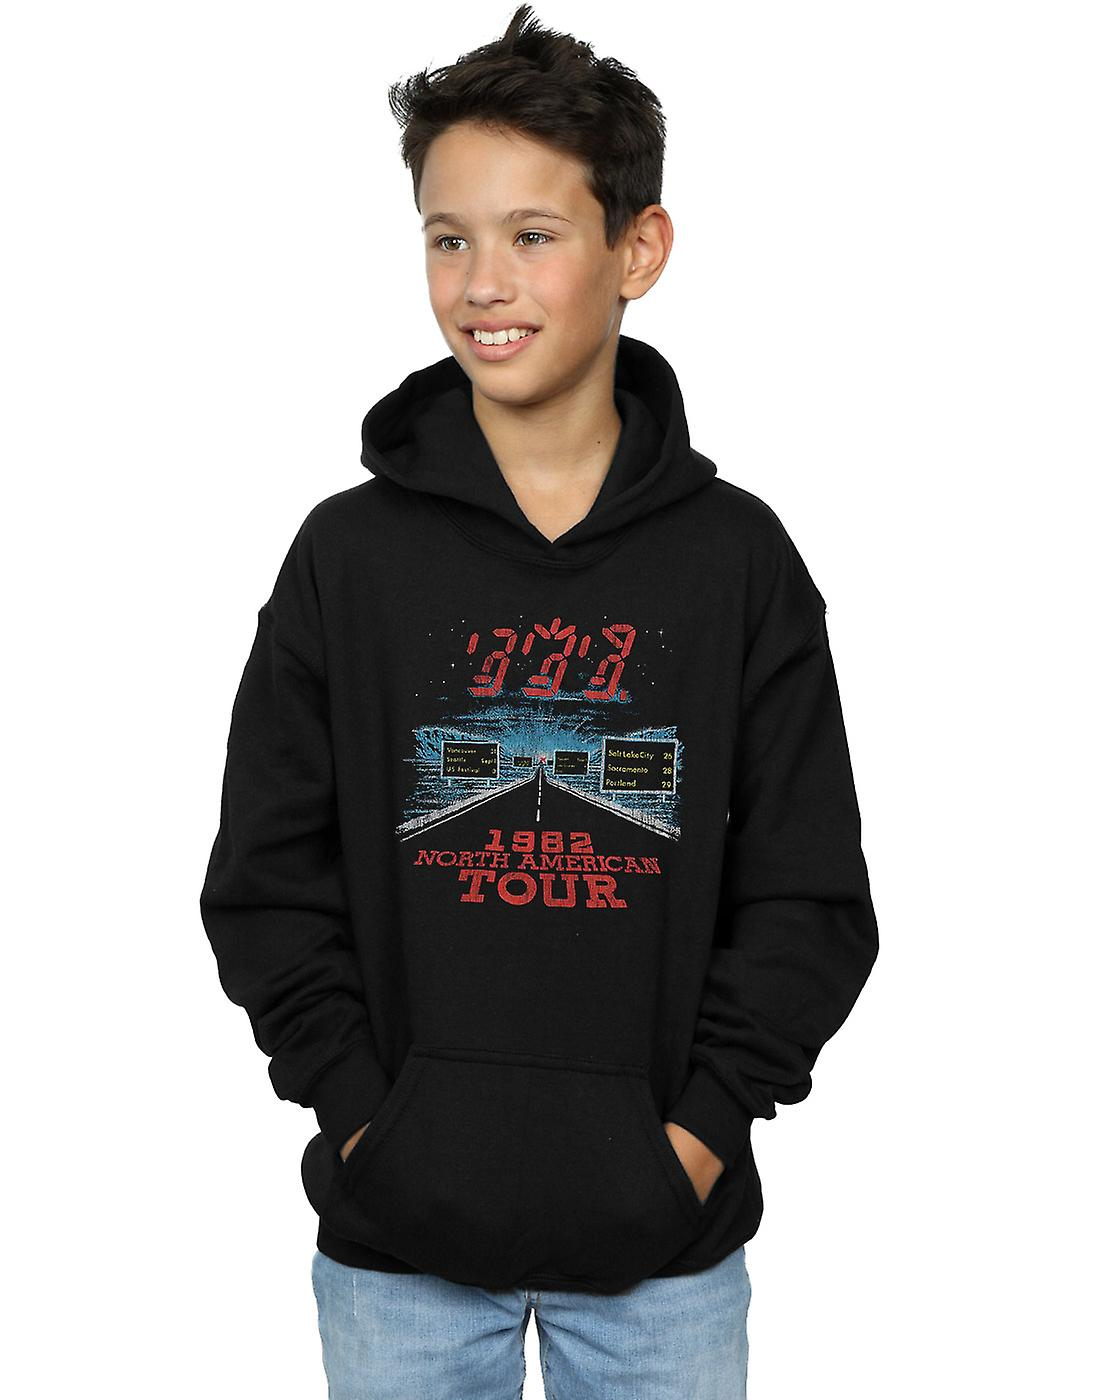 The Police Boys North American Tour Hoodie